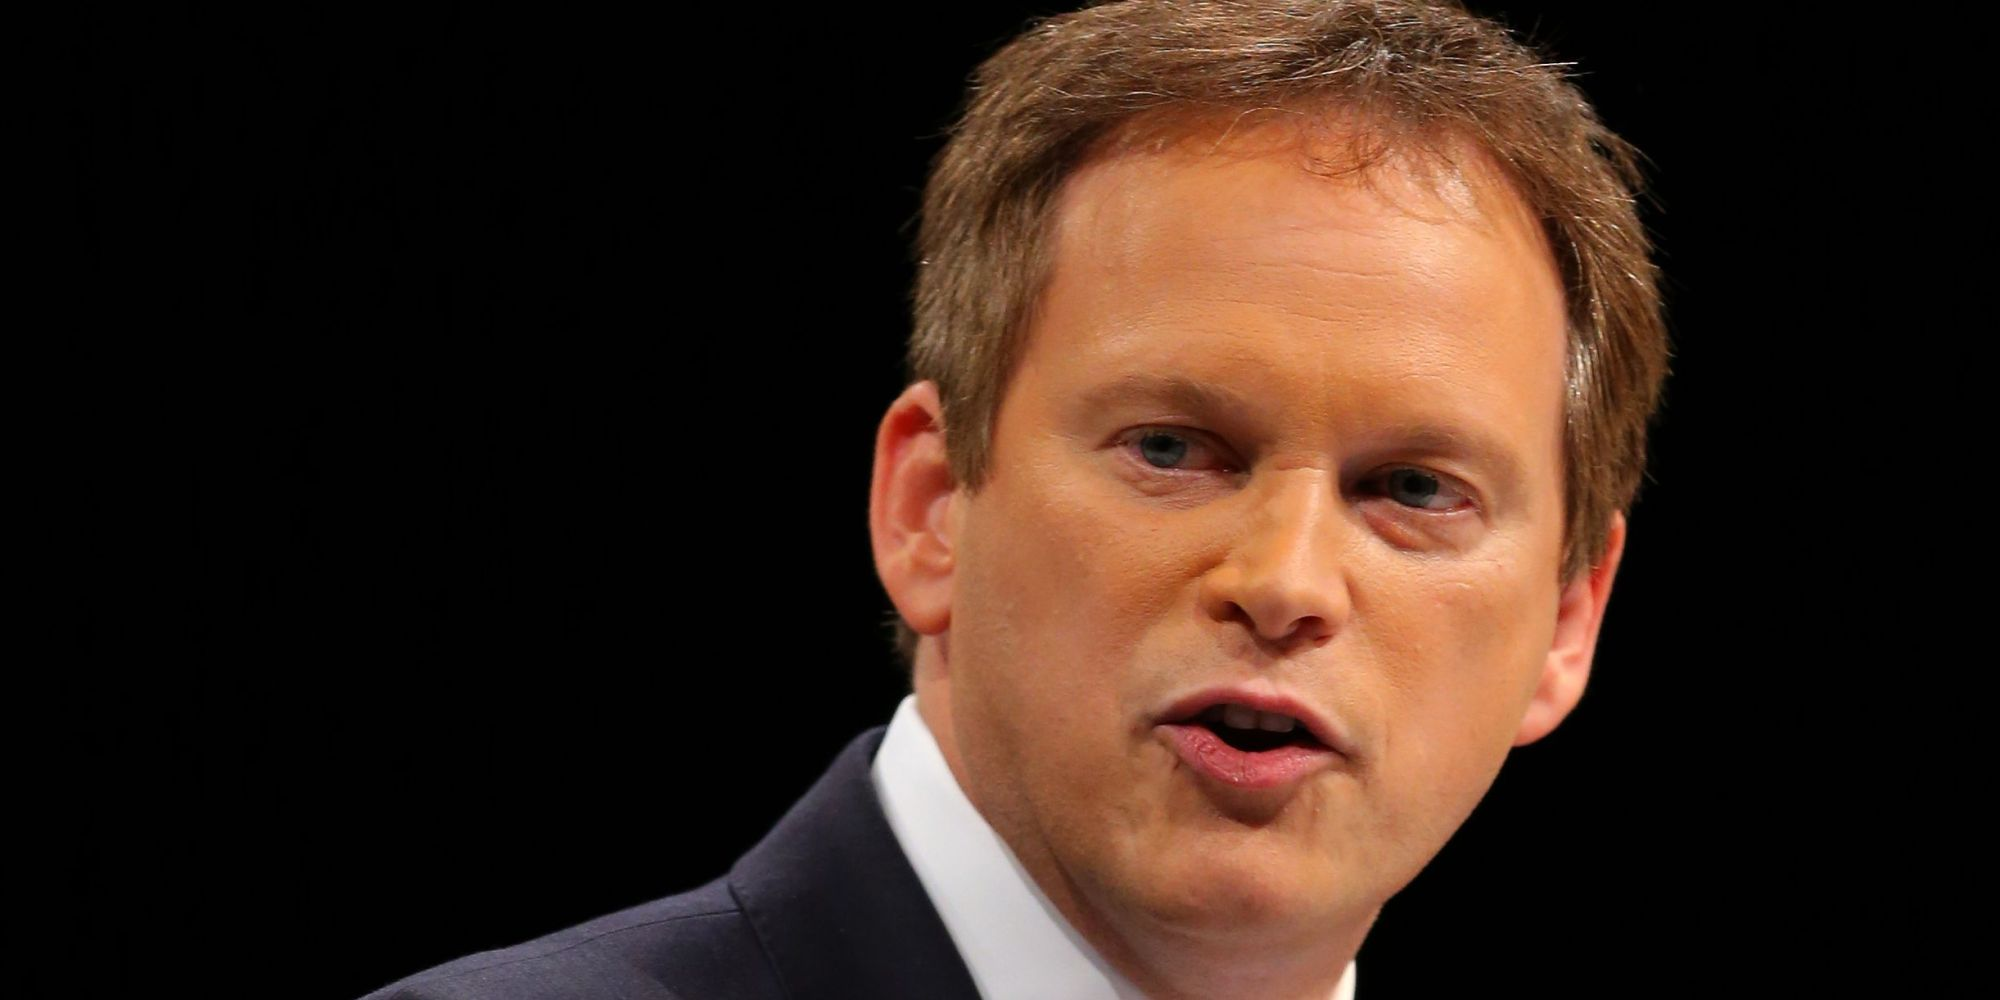 David Cameron Plans To Sack Grant Shapps As Party Chair And Make Him Cabinet-Level Immigration Minister - o-GRANT-SHAPPS-facebook